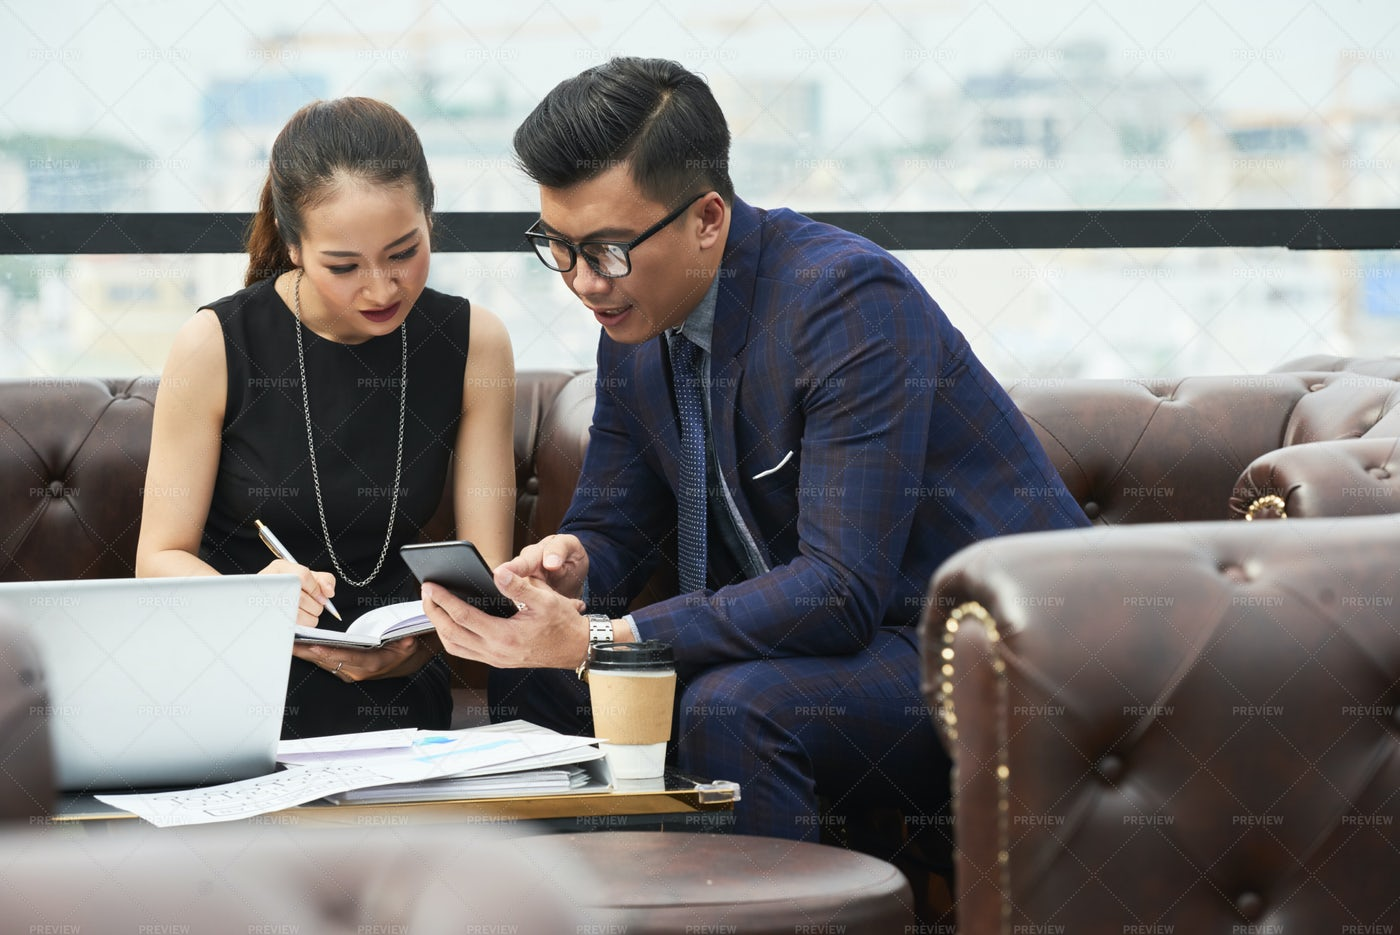 Business People Working On Project: Stock Photos